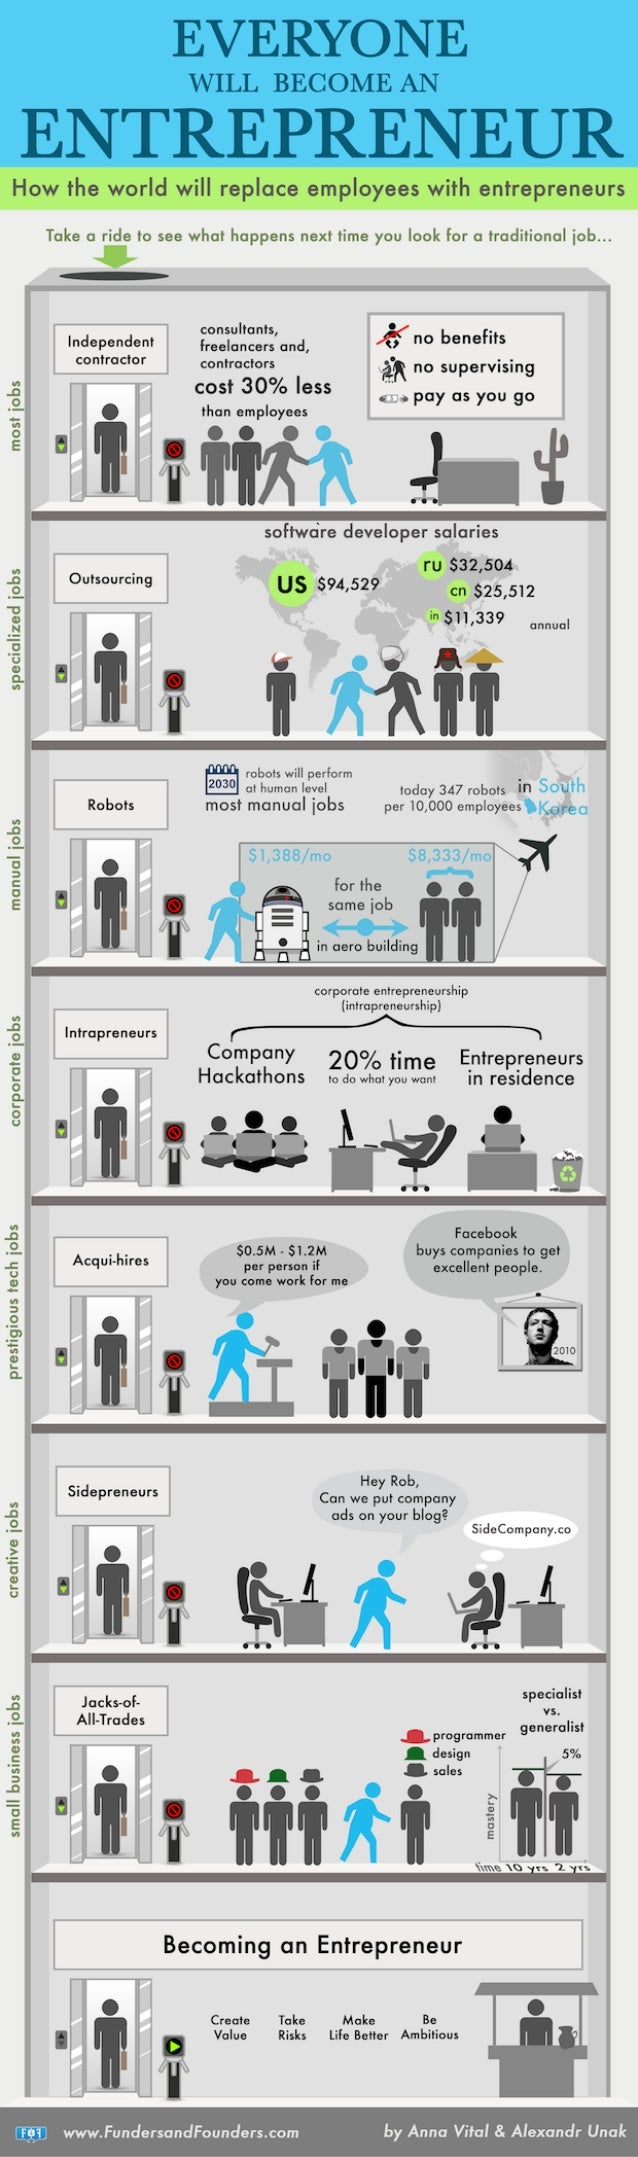 Everyone an-entrepreneur-infographic